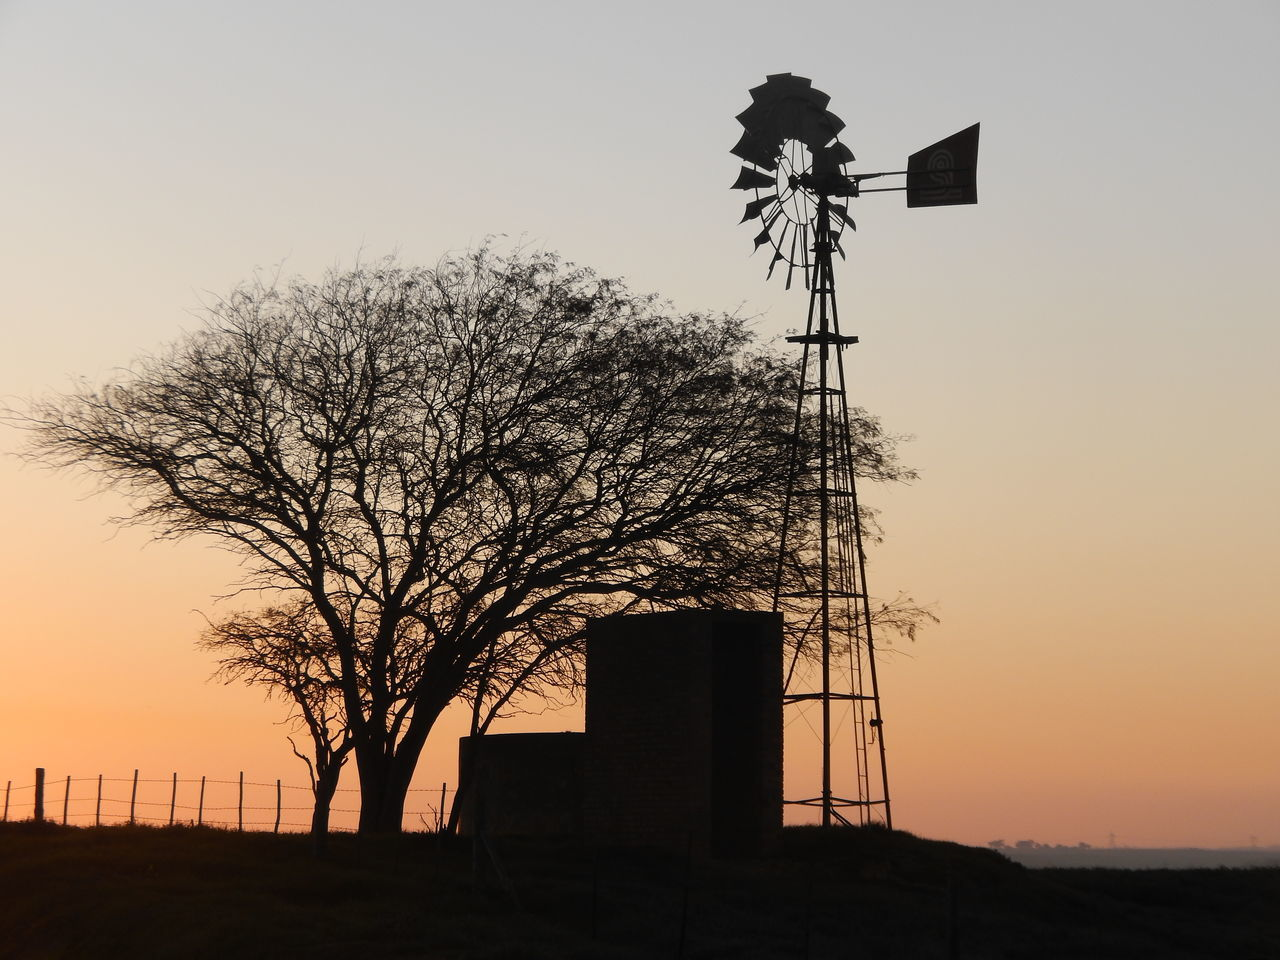 Low Angle View Of Silhouette Tree And American-Style Windmill Against Sky During Sunset